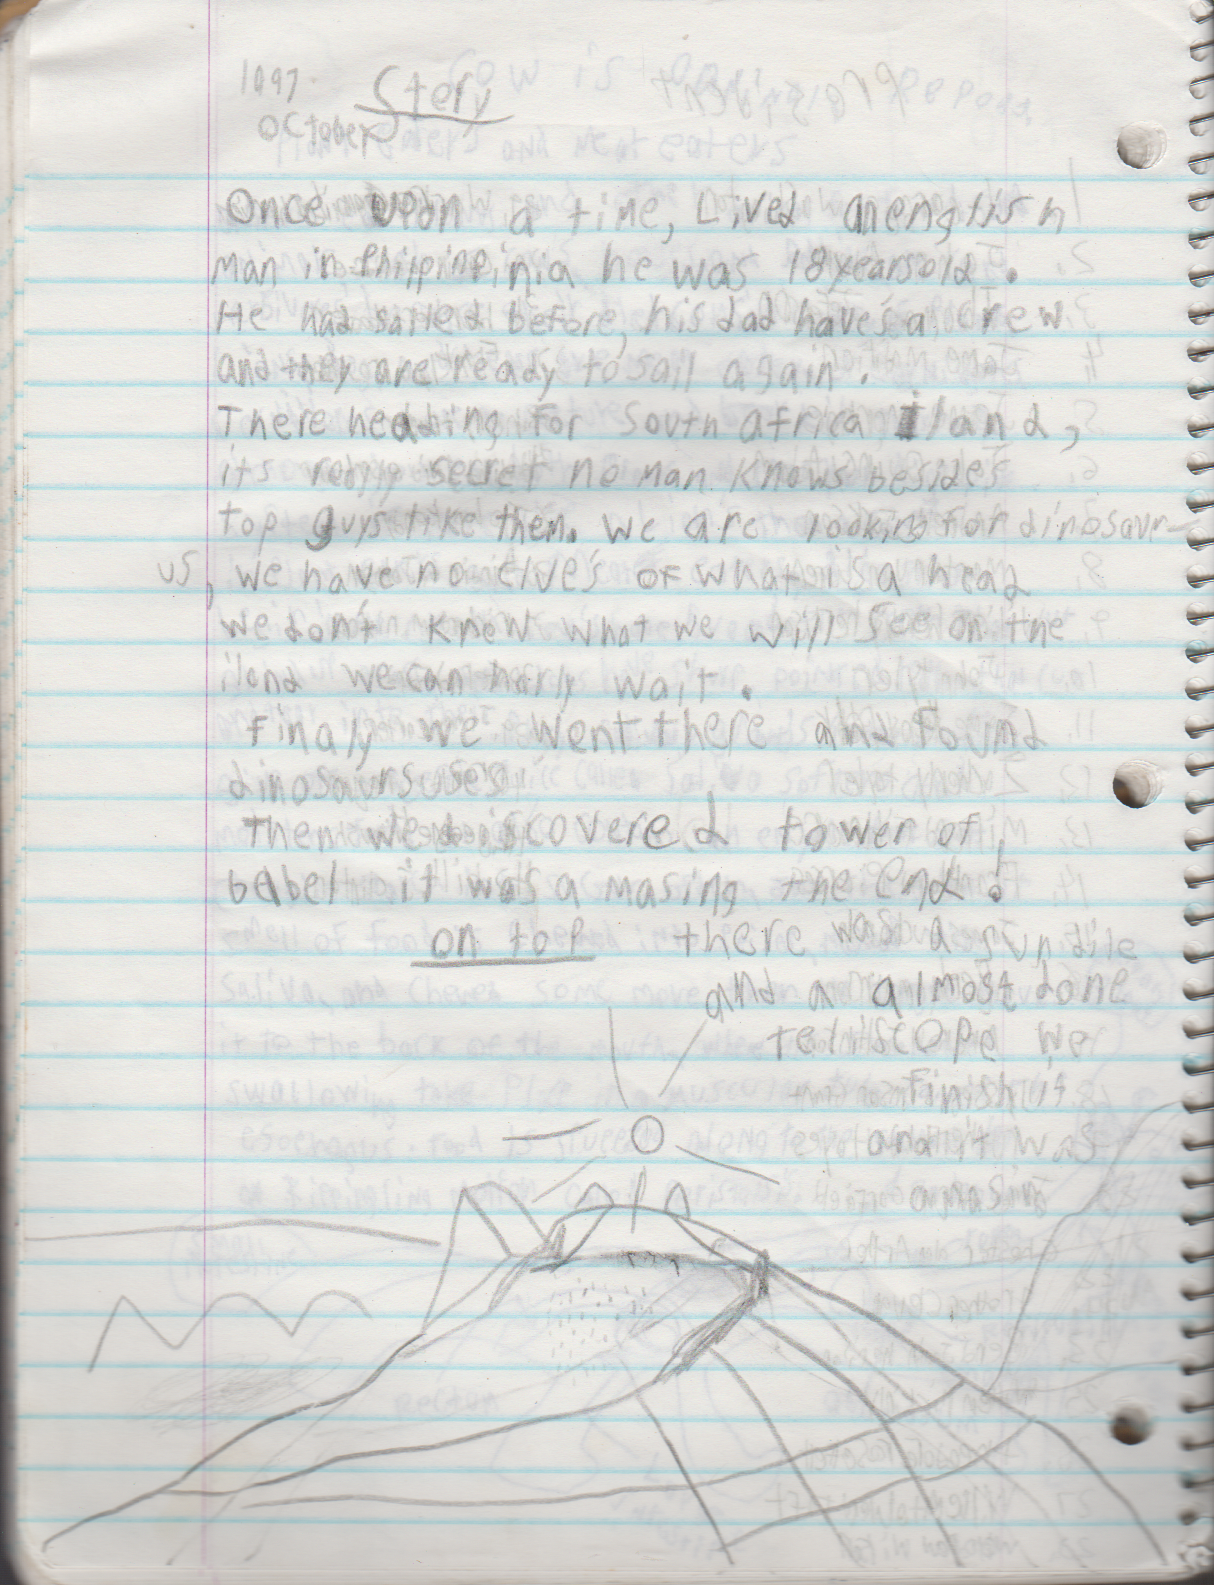 1996-08-18 - Saturday - 11 yr old Joey Arnold's School Book, dates through to 1998 apx, mostly 96, Writings, Drawings, Etc-054.png